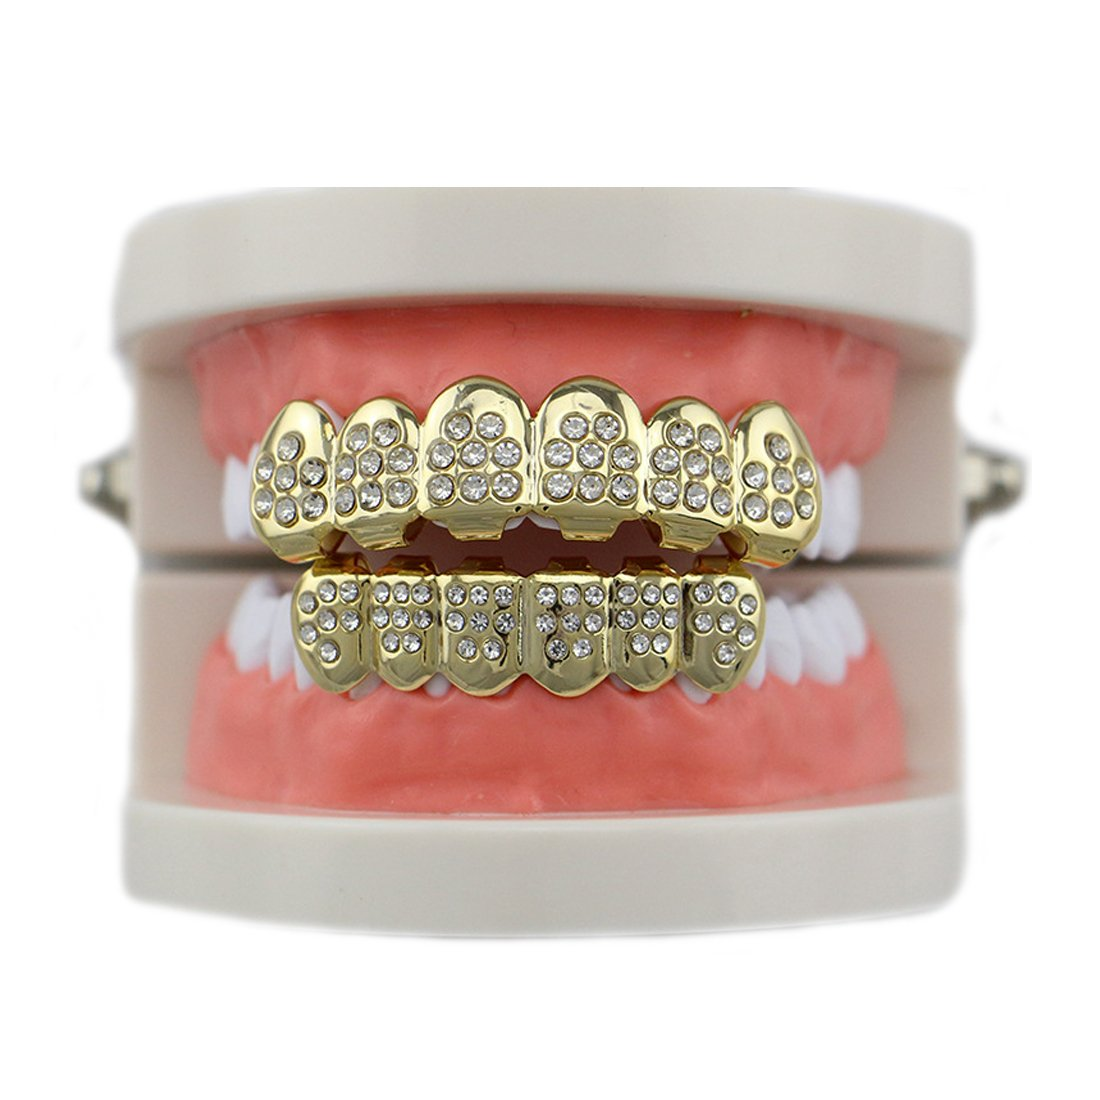 MTRSUE 18K Gold Plated CZ Vampire Hip Hop Teeth Bottom Grill Set YCP-P01